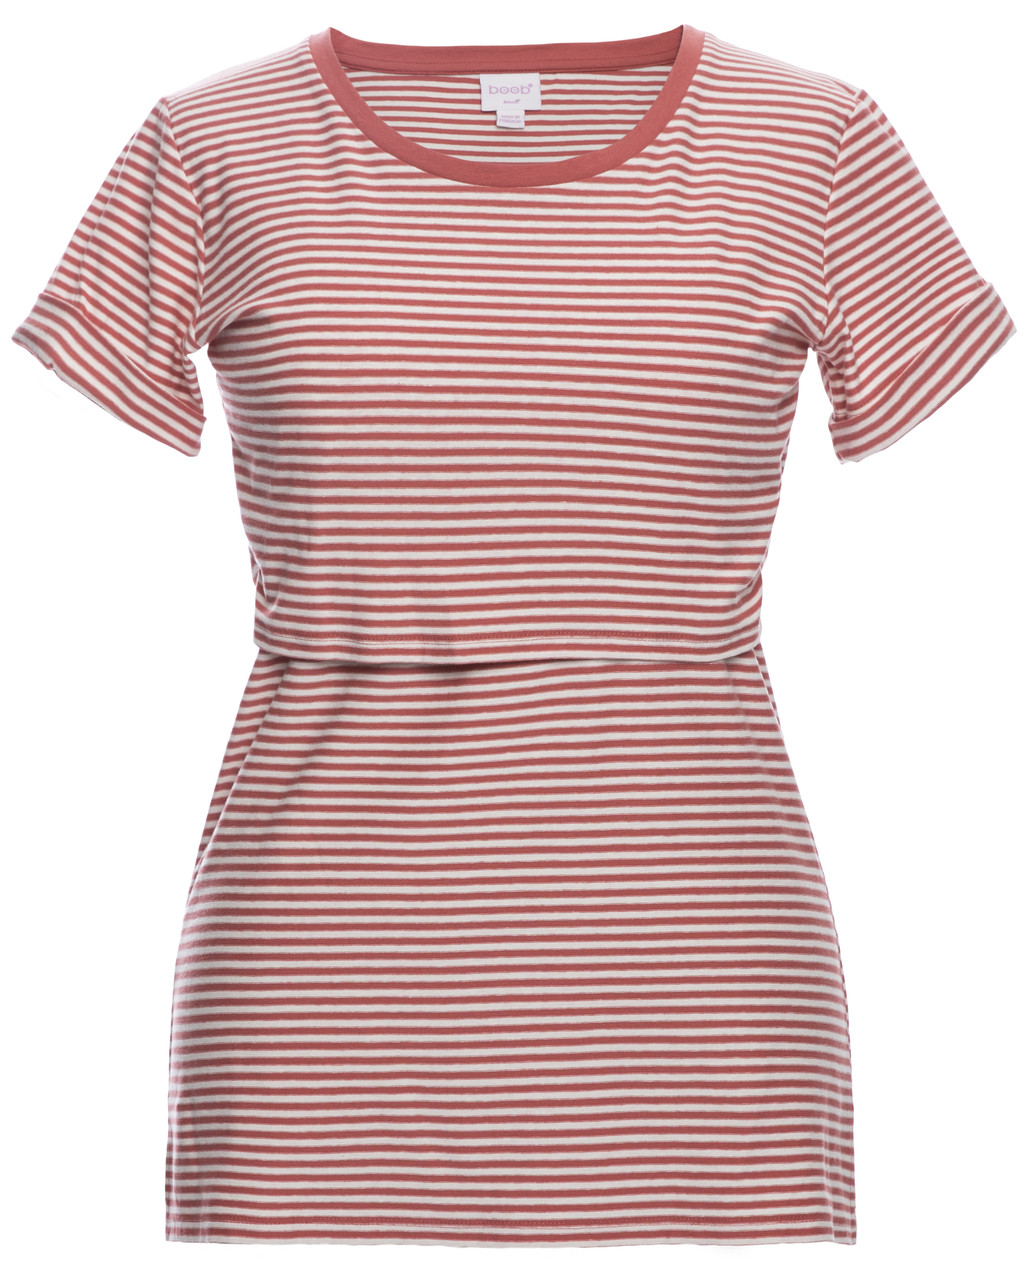 9a63d0eea66 Boob EVA striped Tee - faded rose - Stockholm Objects